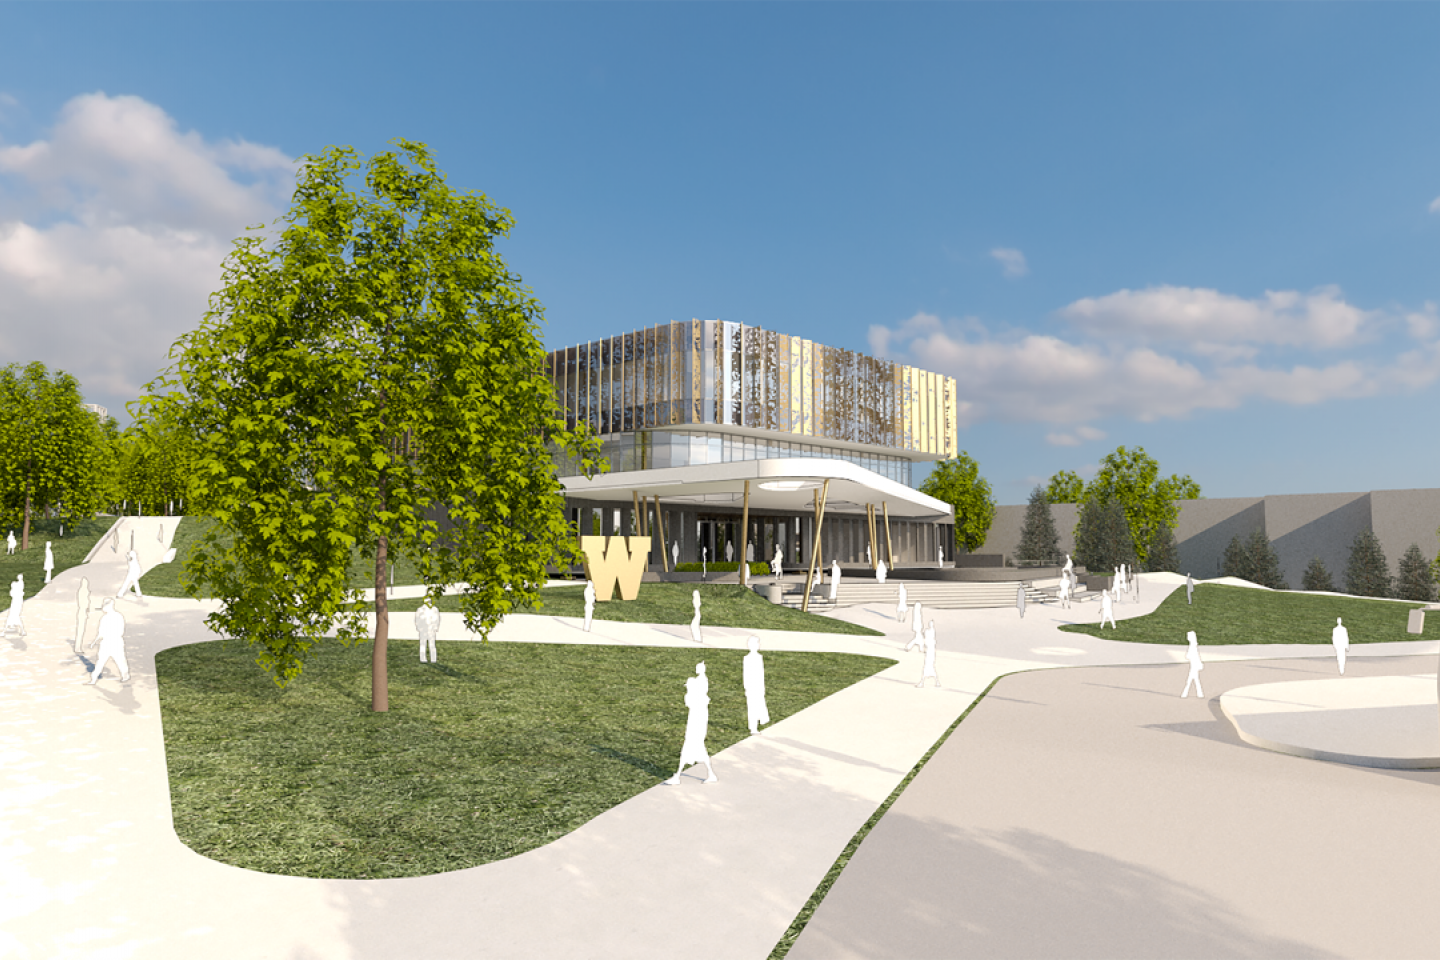 Photo of a rendering of the new WMU student center.